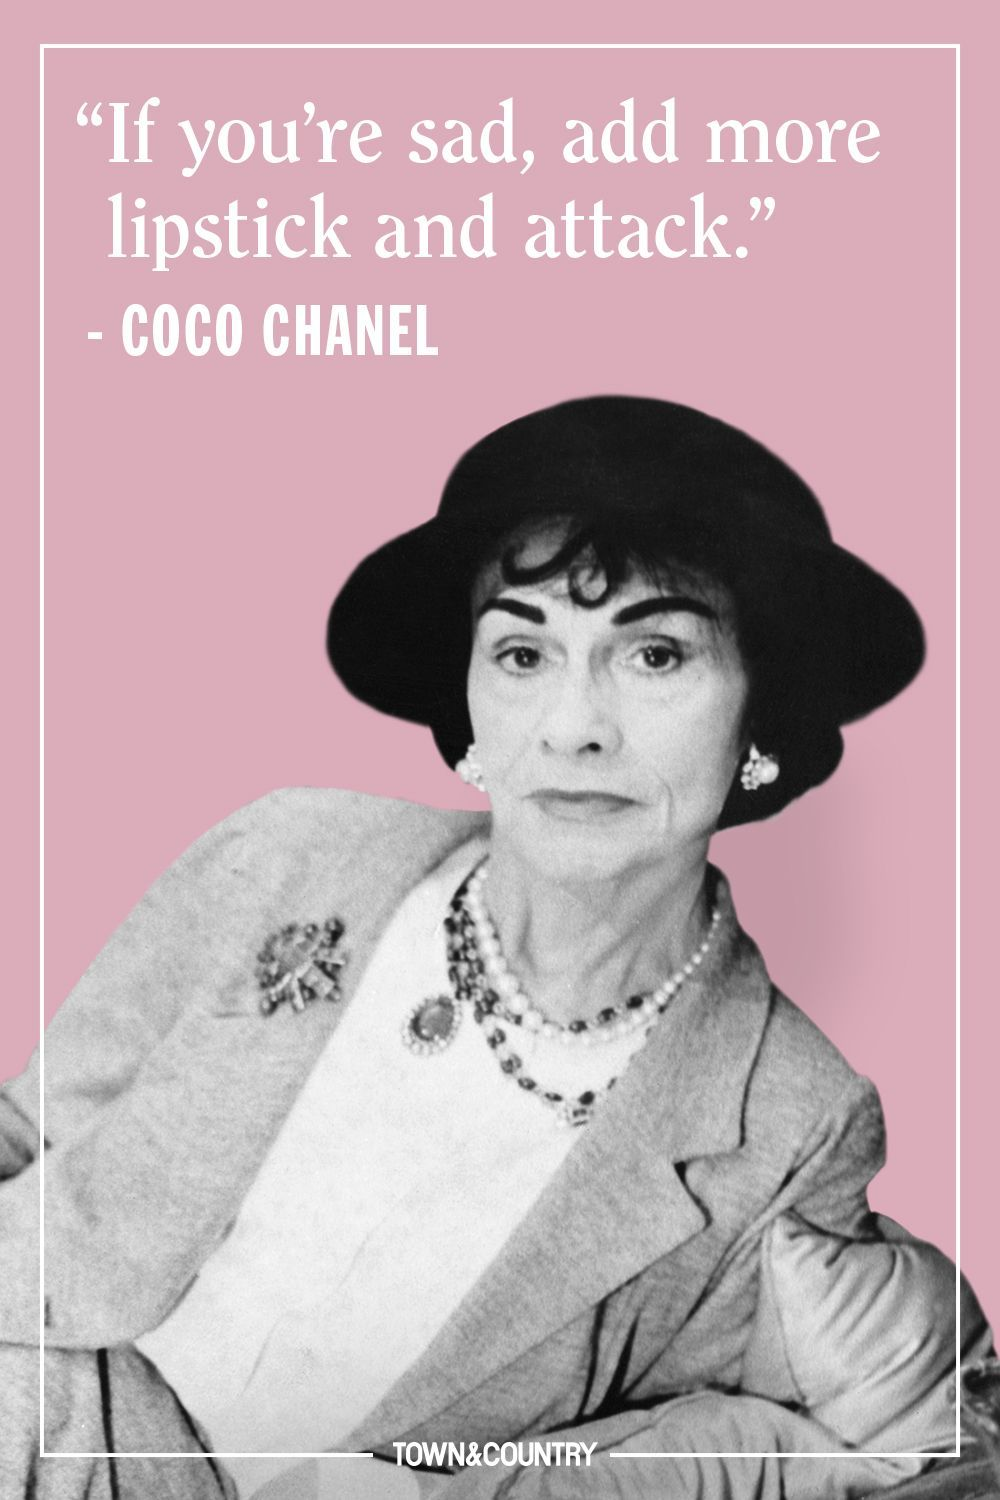 25 coco chanel quotes every woman should live by main page coco